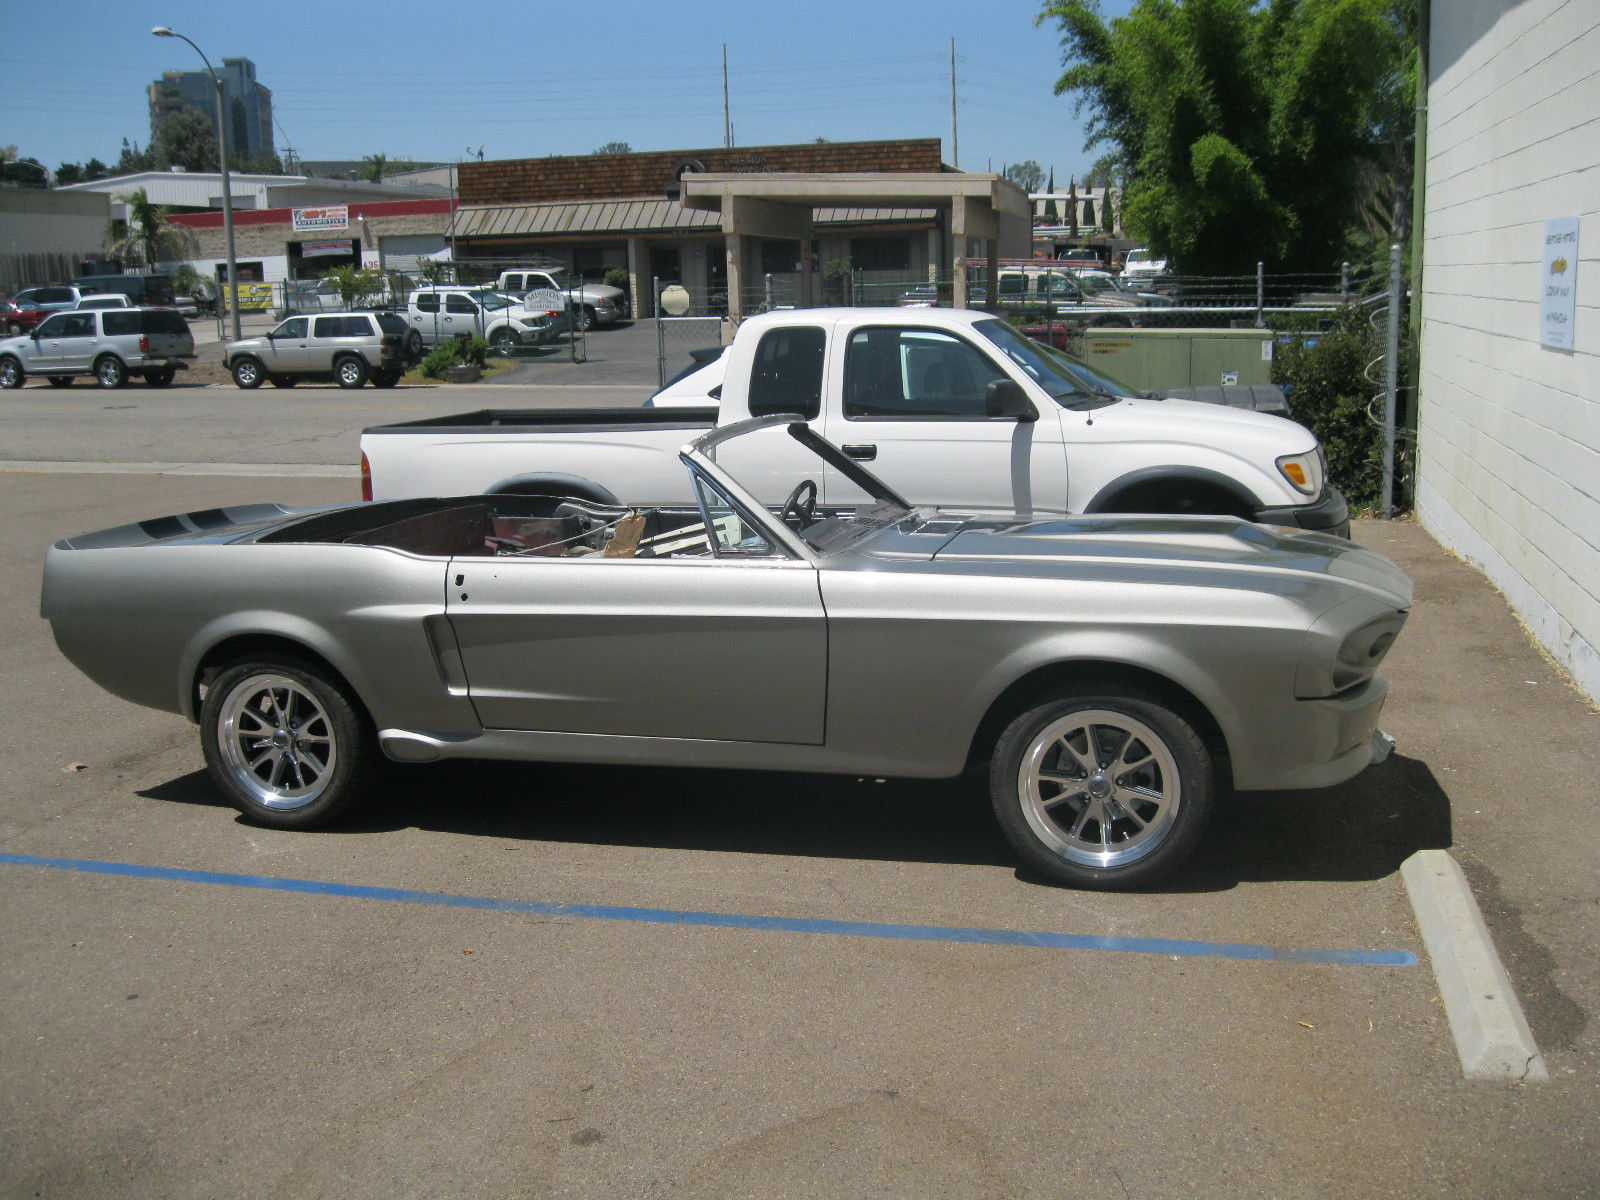 1967 Eleanor Mustang project car for sale in Carlsbad ...